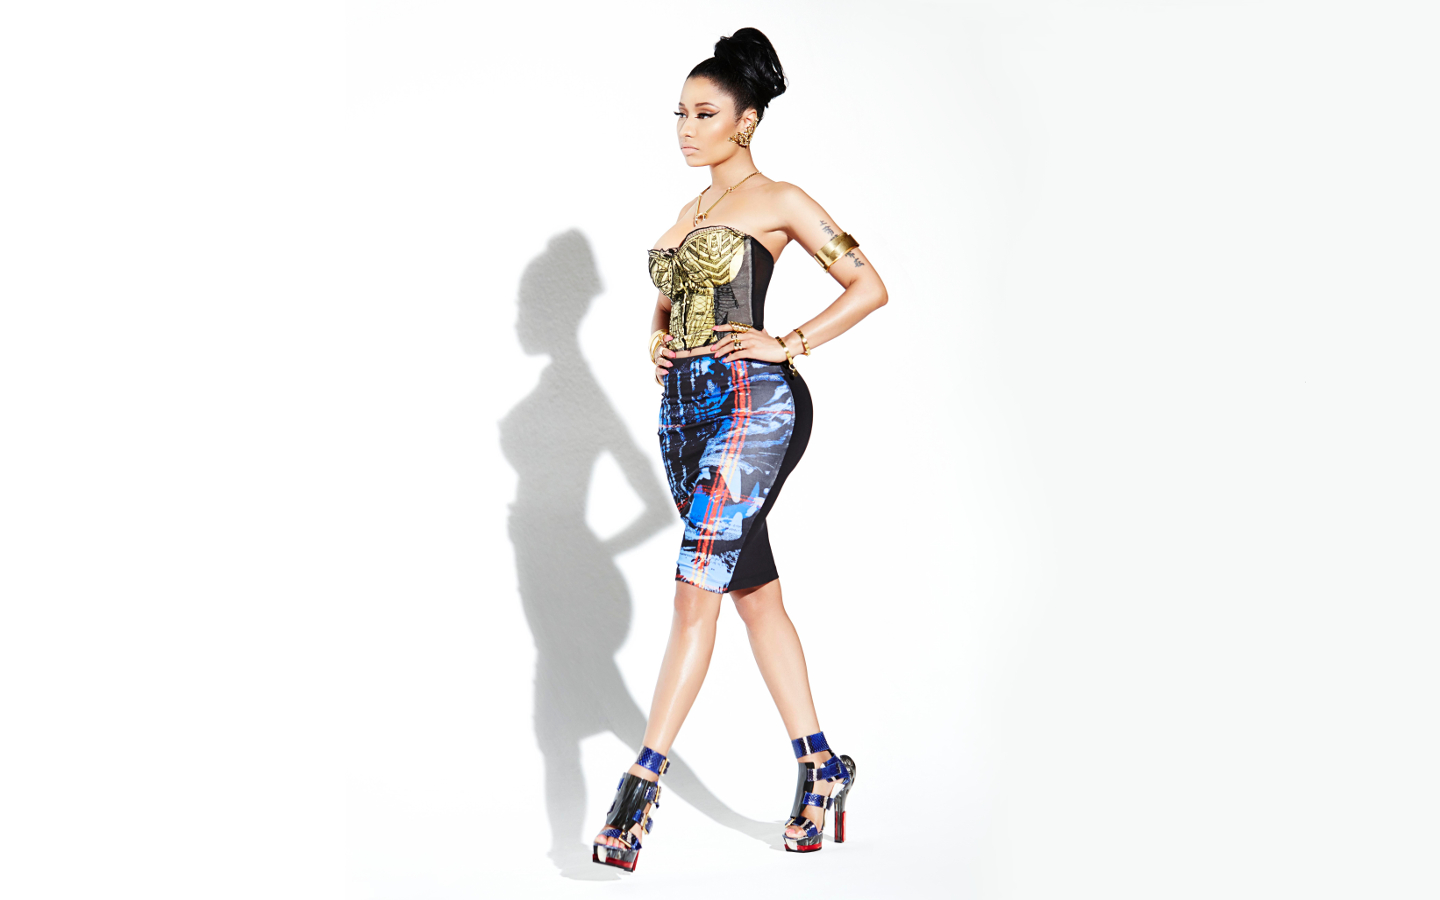 Nicki Minaj secret shoot   Nicki Minaj Wallpaper 37423953 1440x900